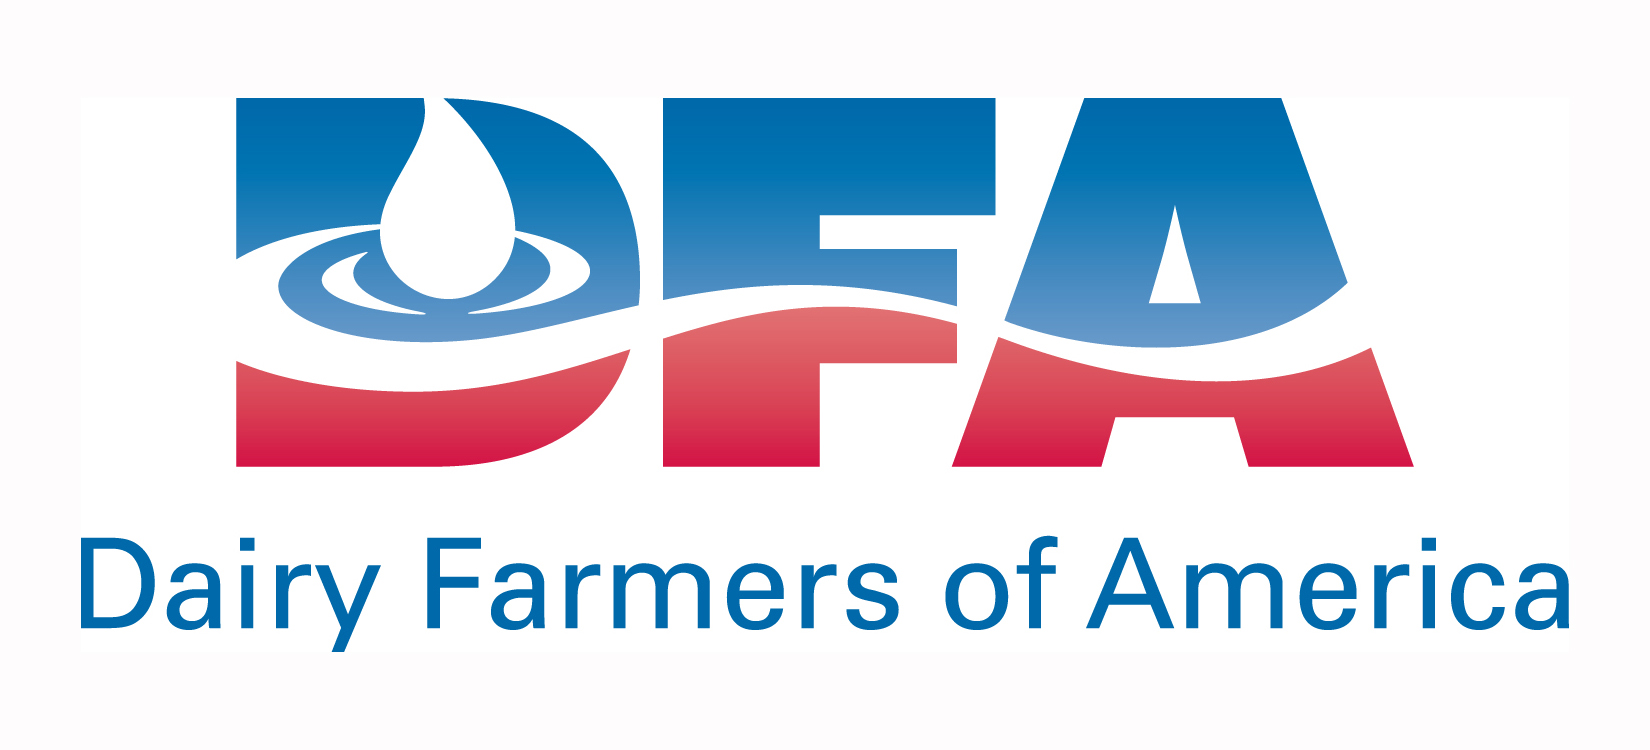 Dairy-Farmers-of-America-logo